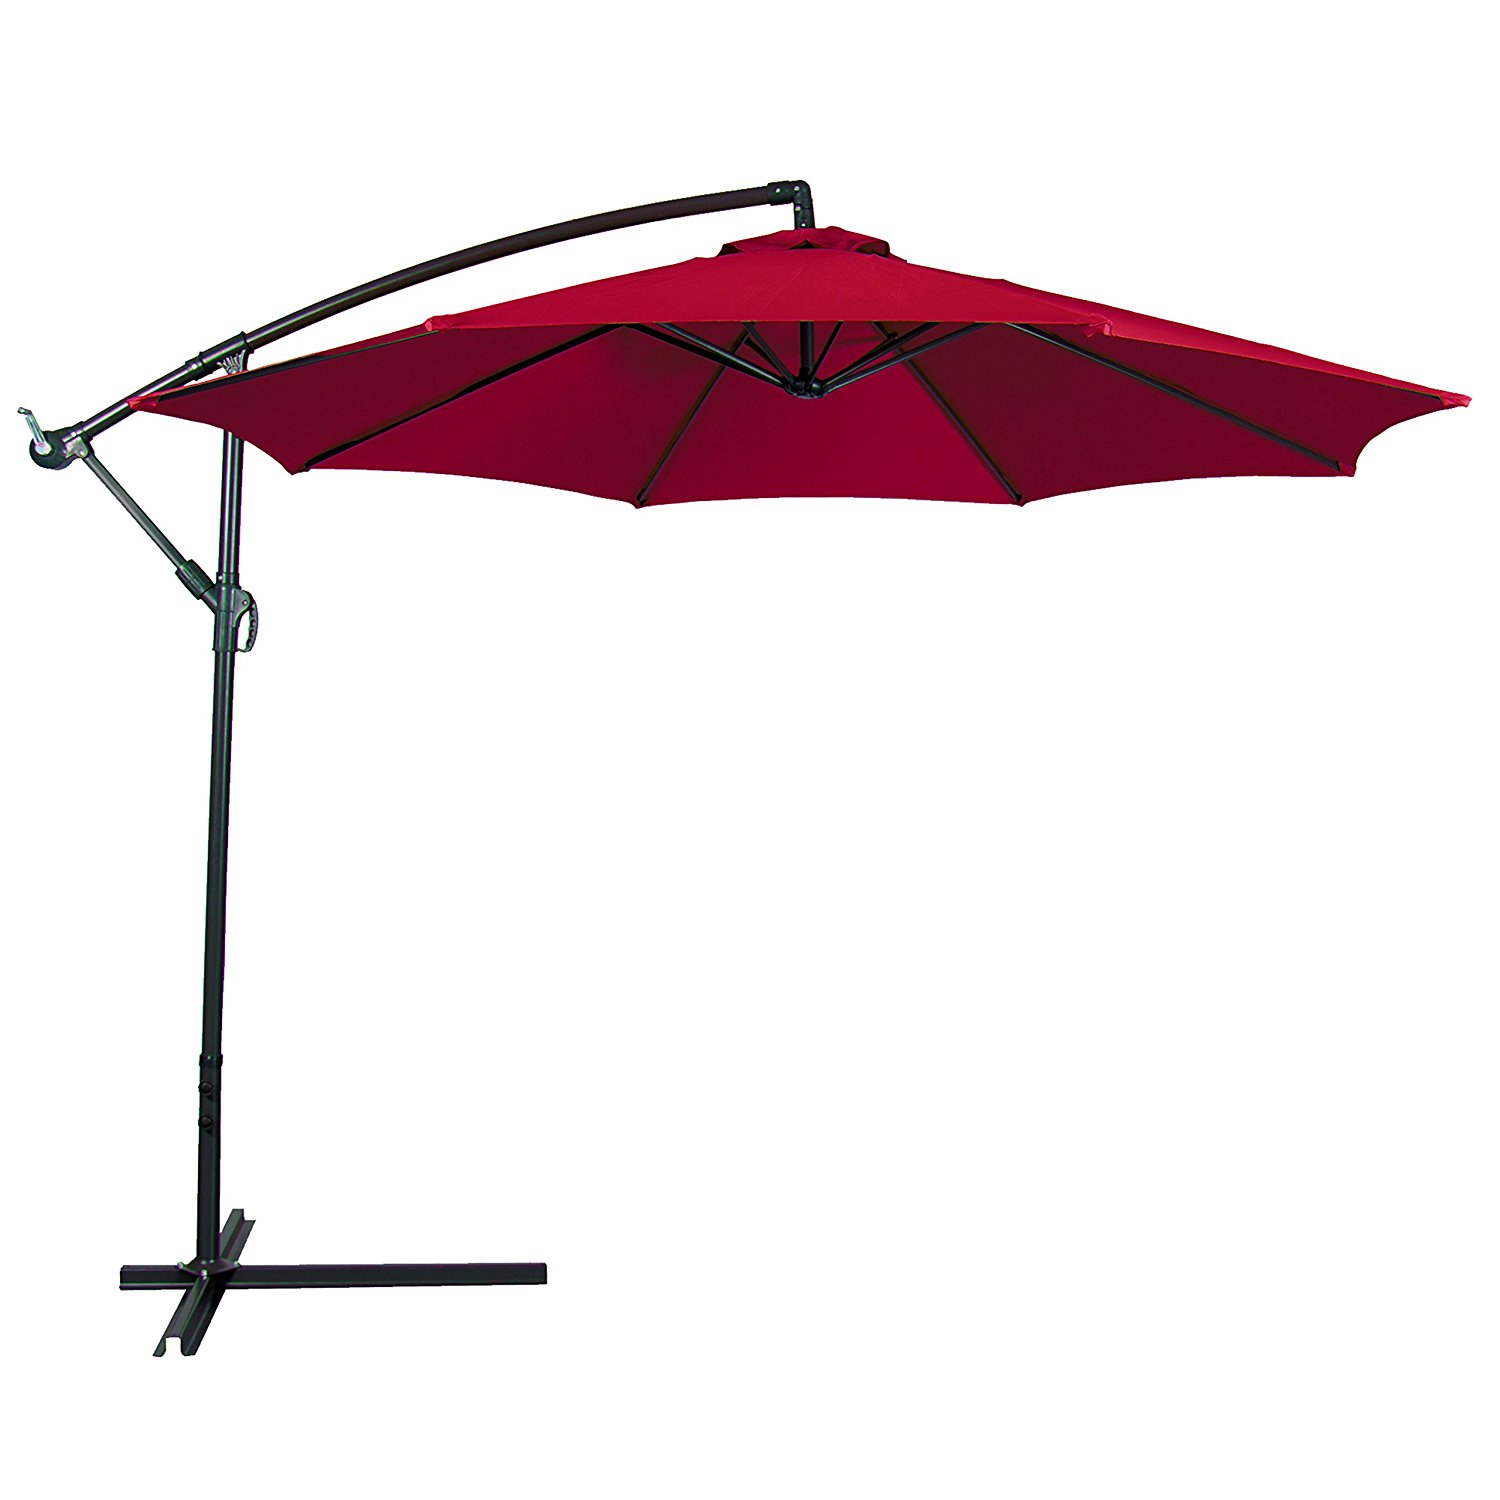 Treasure Garden Cantilever Umbrella 13 | Garden Treasures Offset Umbrella | Rectangular Patio Umbrella with Solar Lights